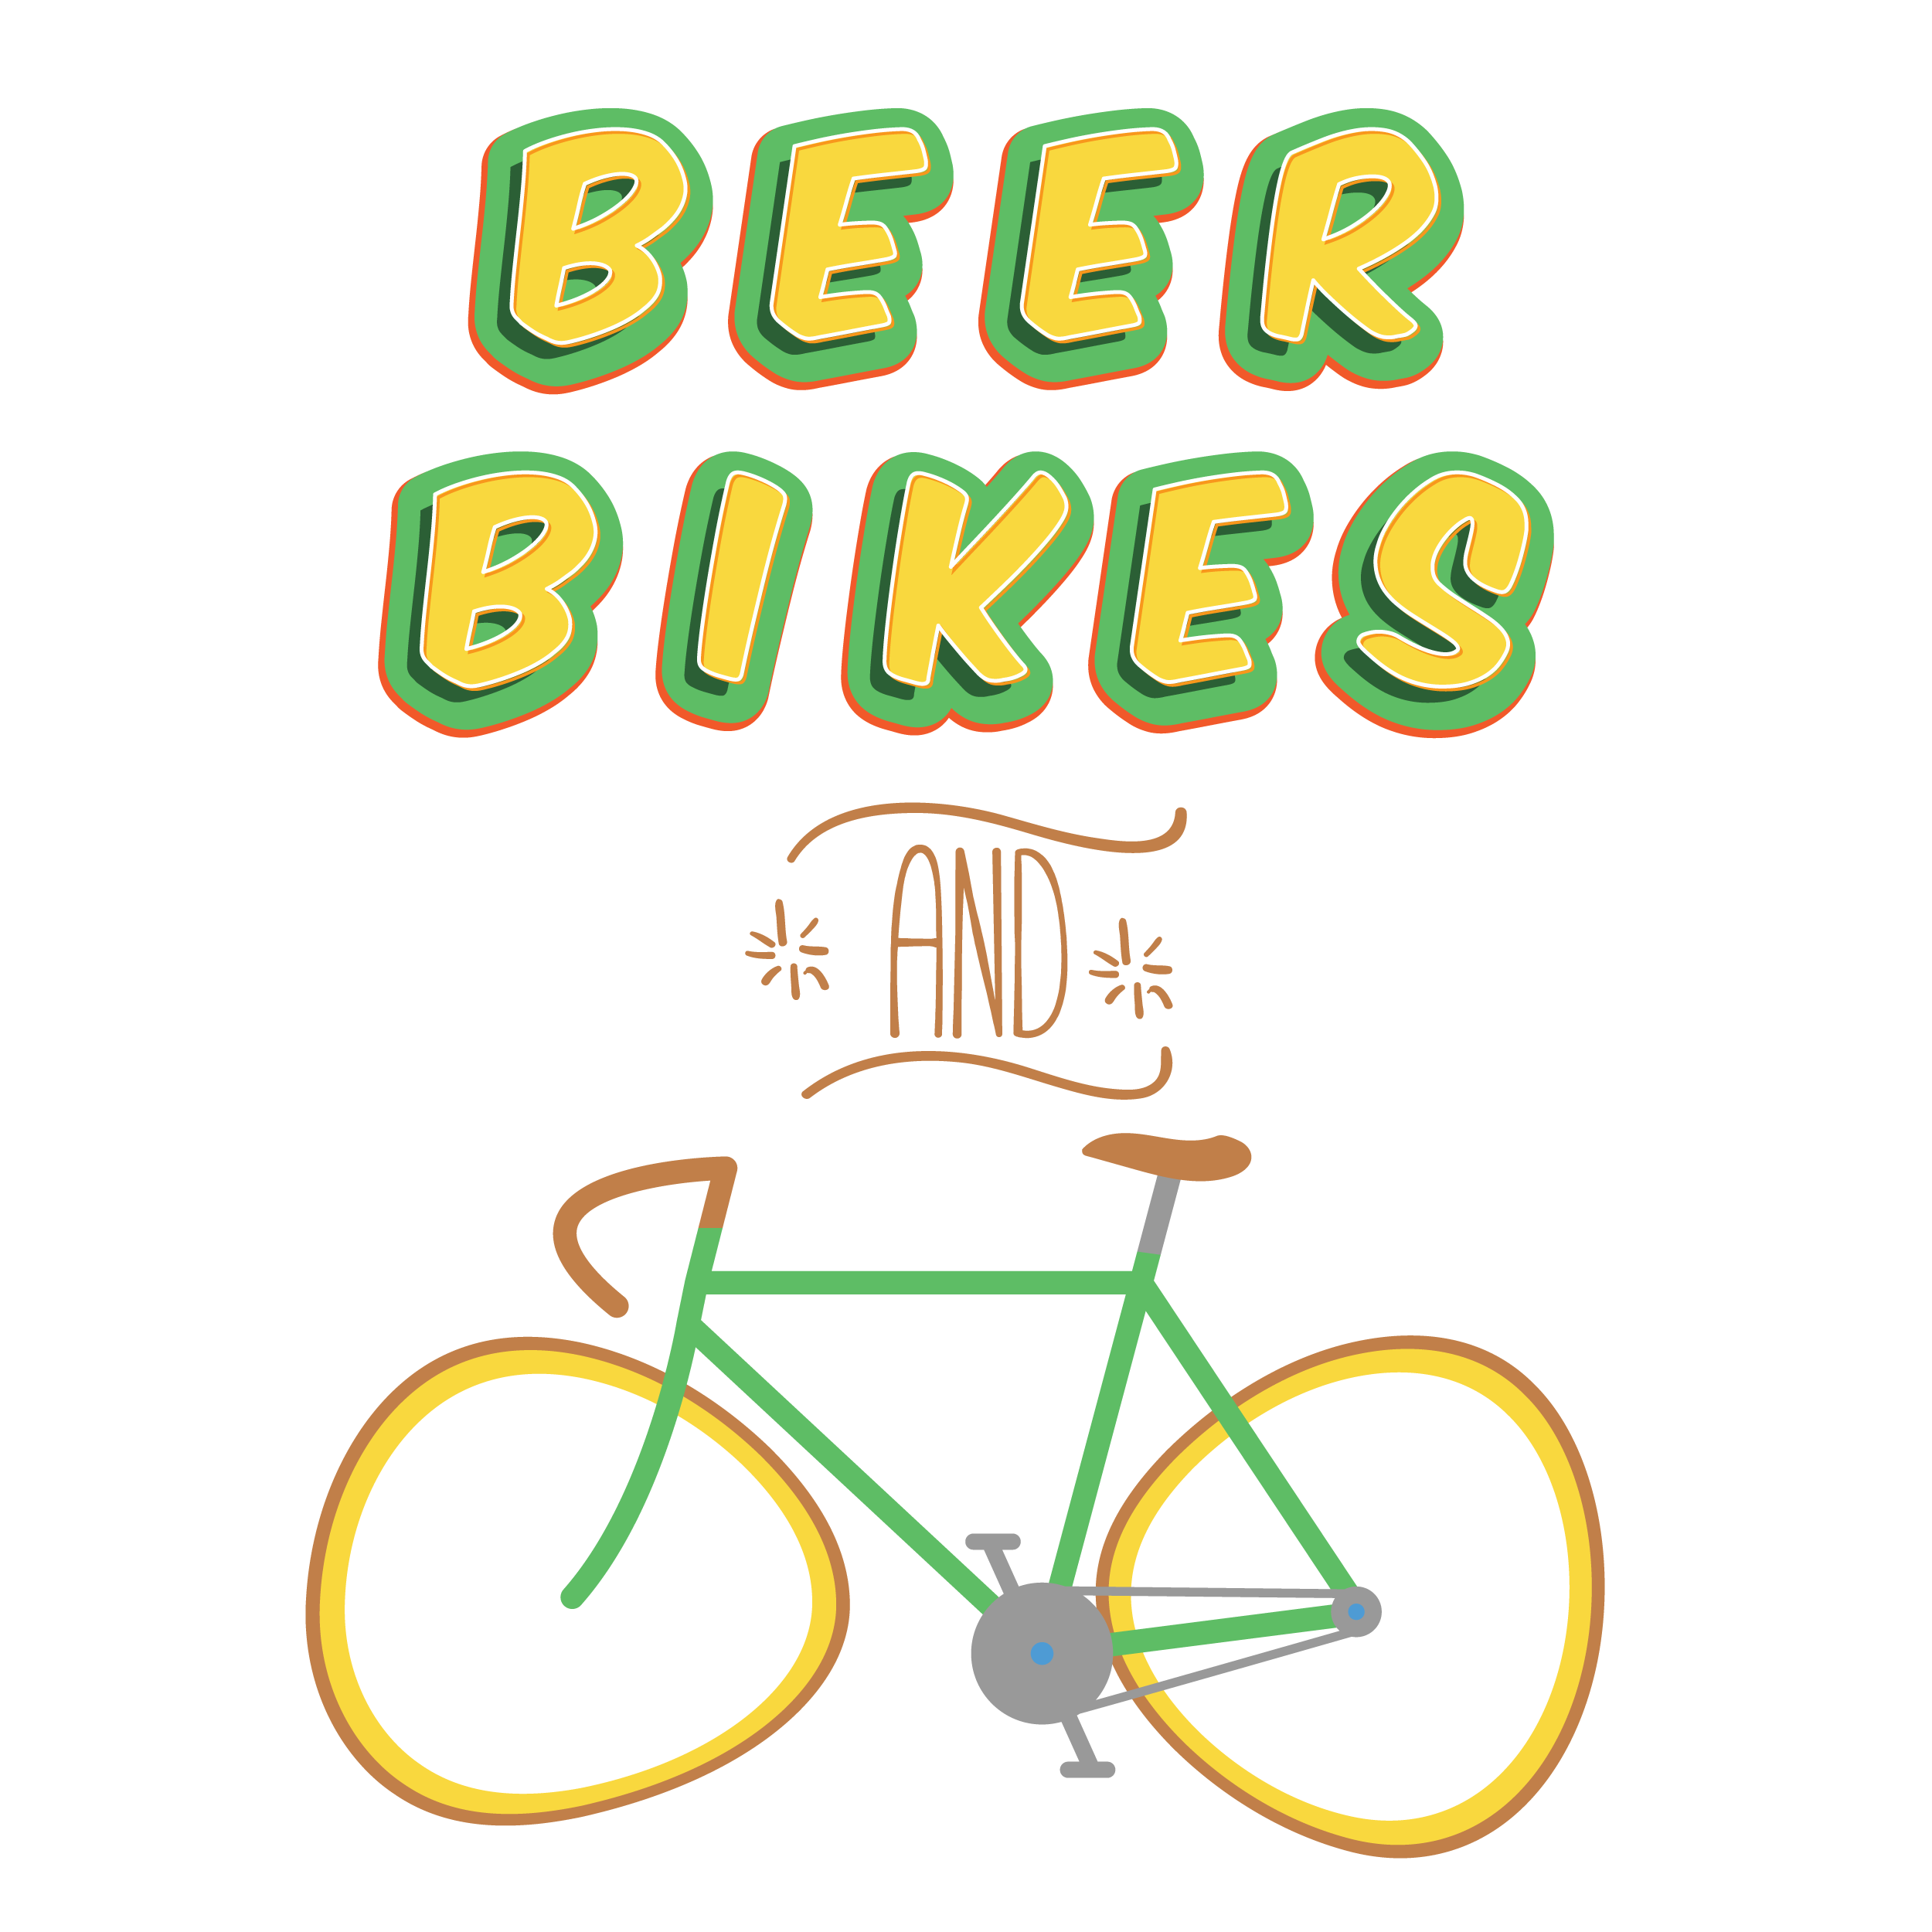 Beer Bikes and Image of a bicycle with tacoed wheels